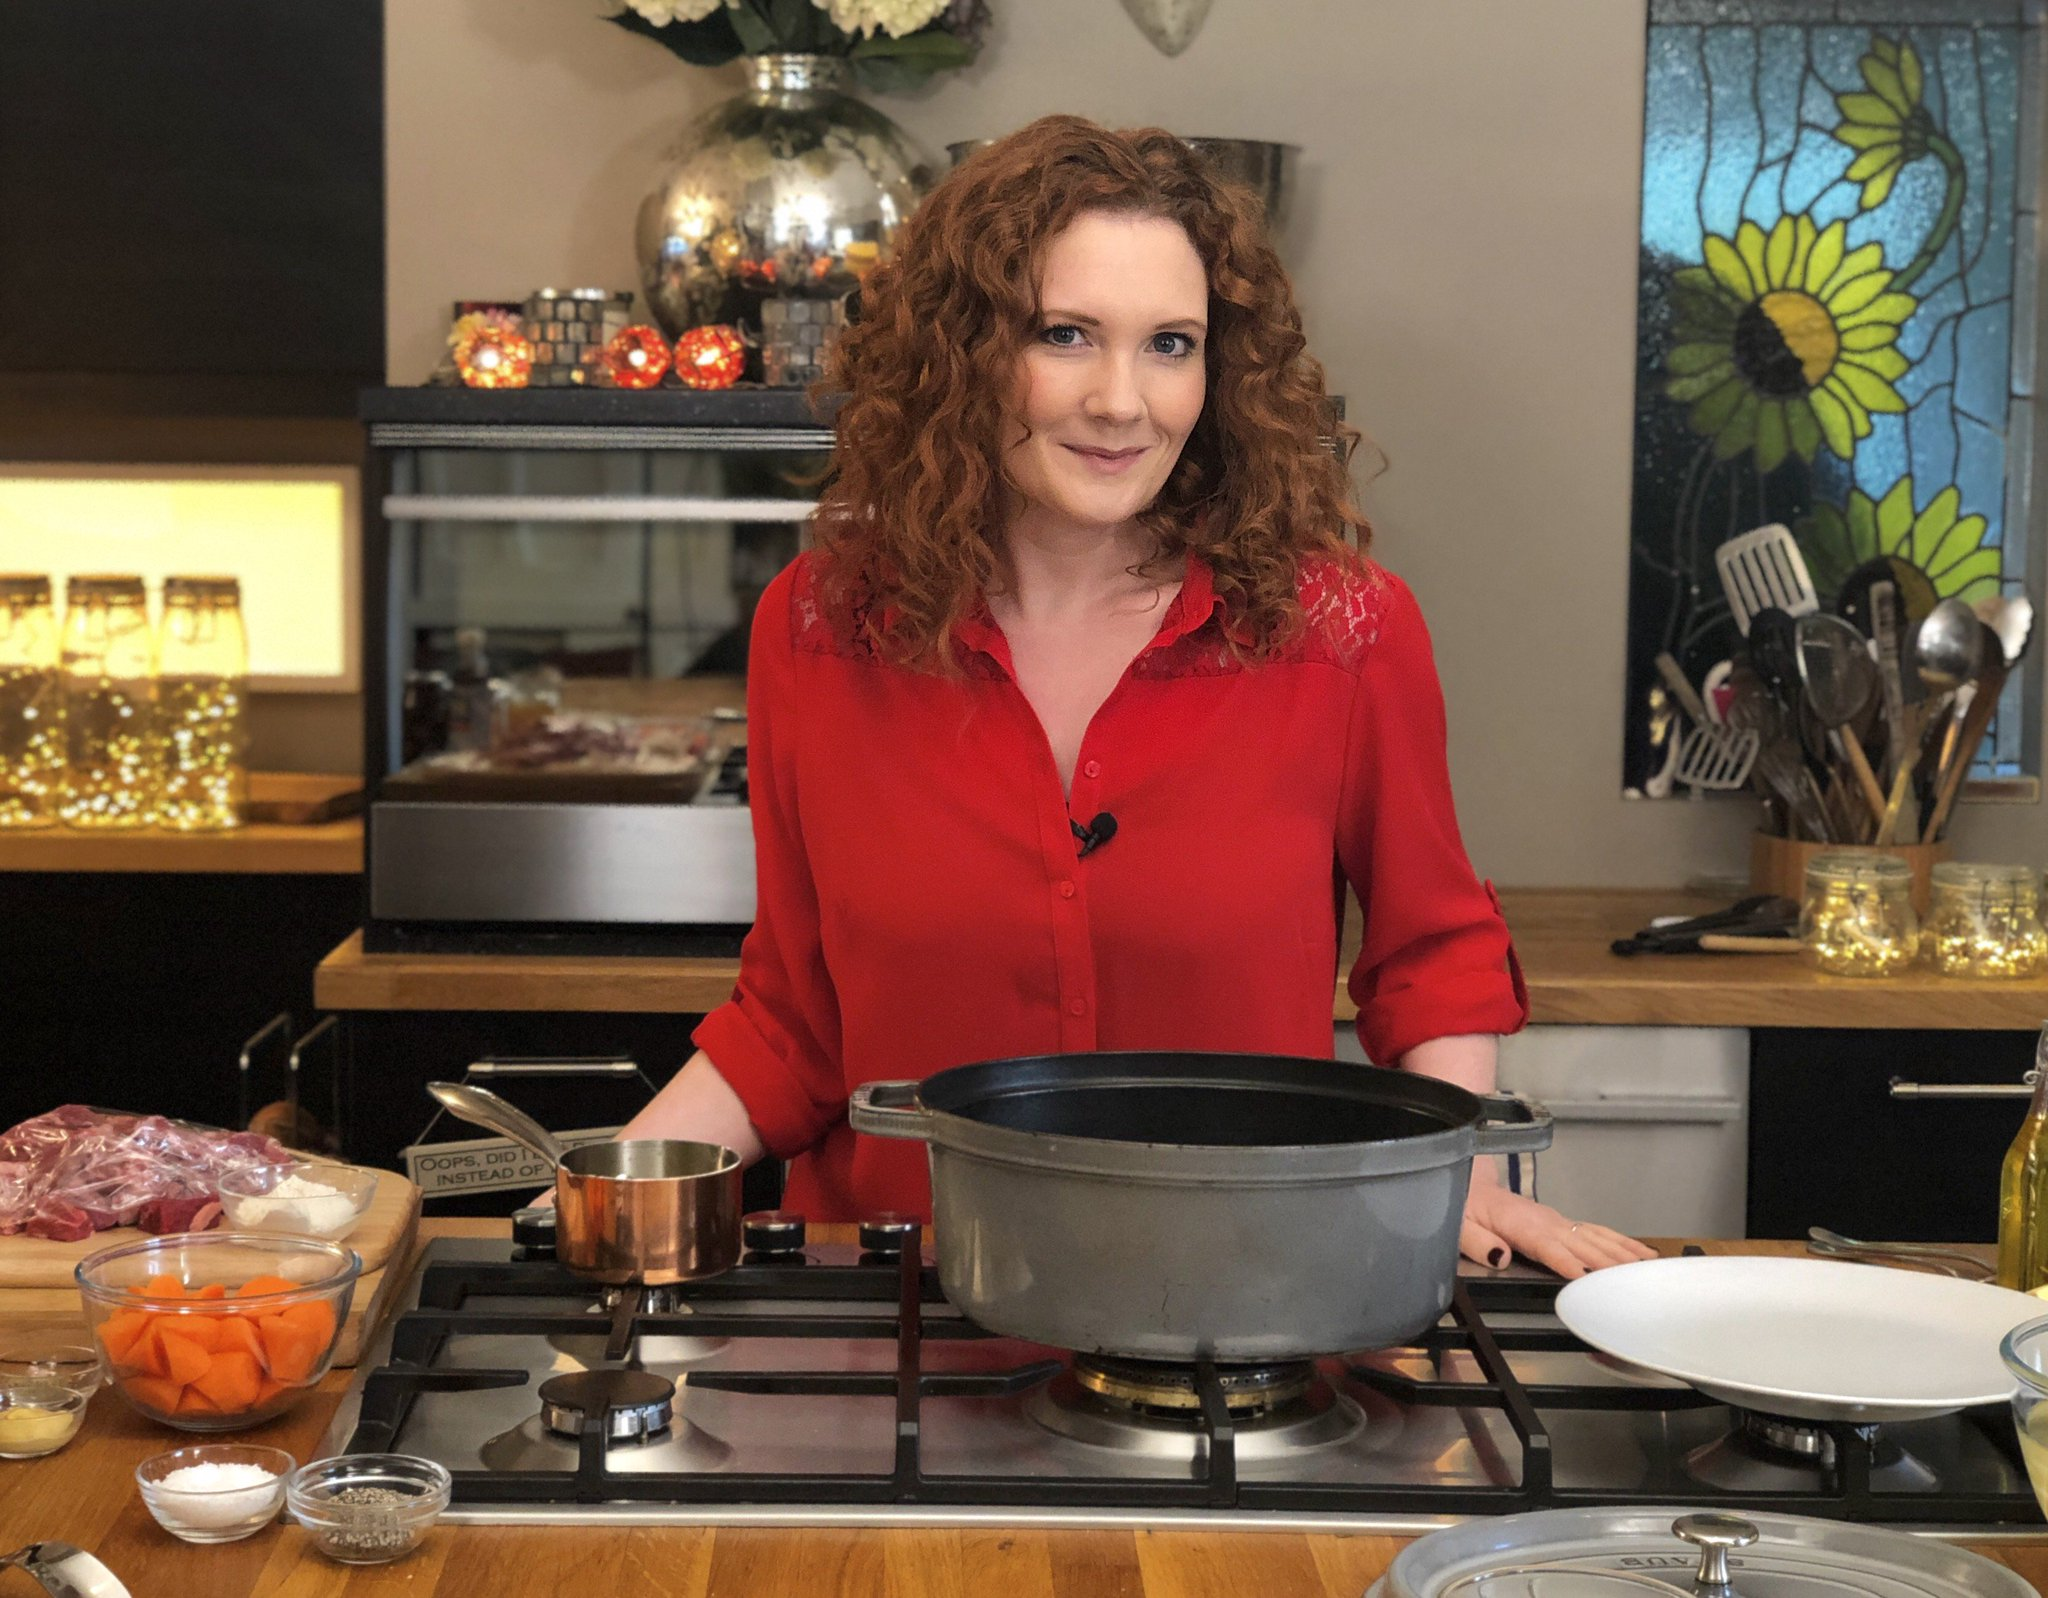 RT @ITVLorraine: Plus, @jenniemcalpine will be cooking us up a treat for the weekend! 🍽️ https://t.co/ktNBtq2xu9